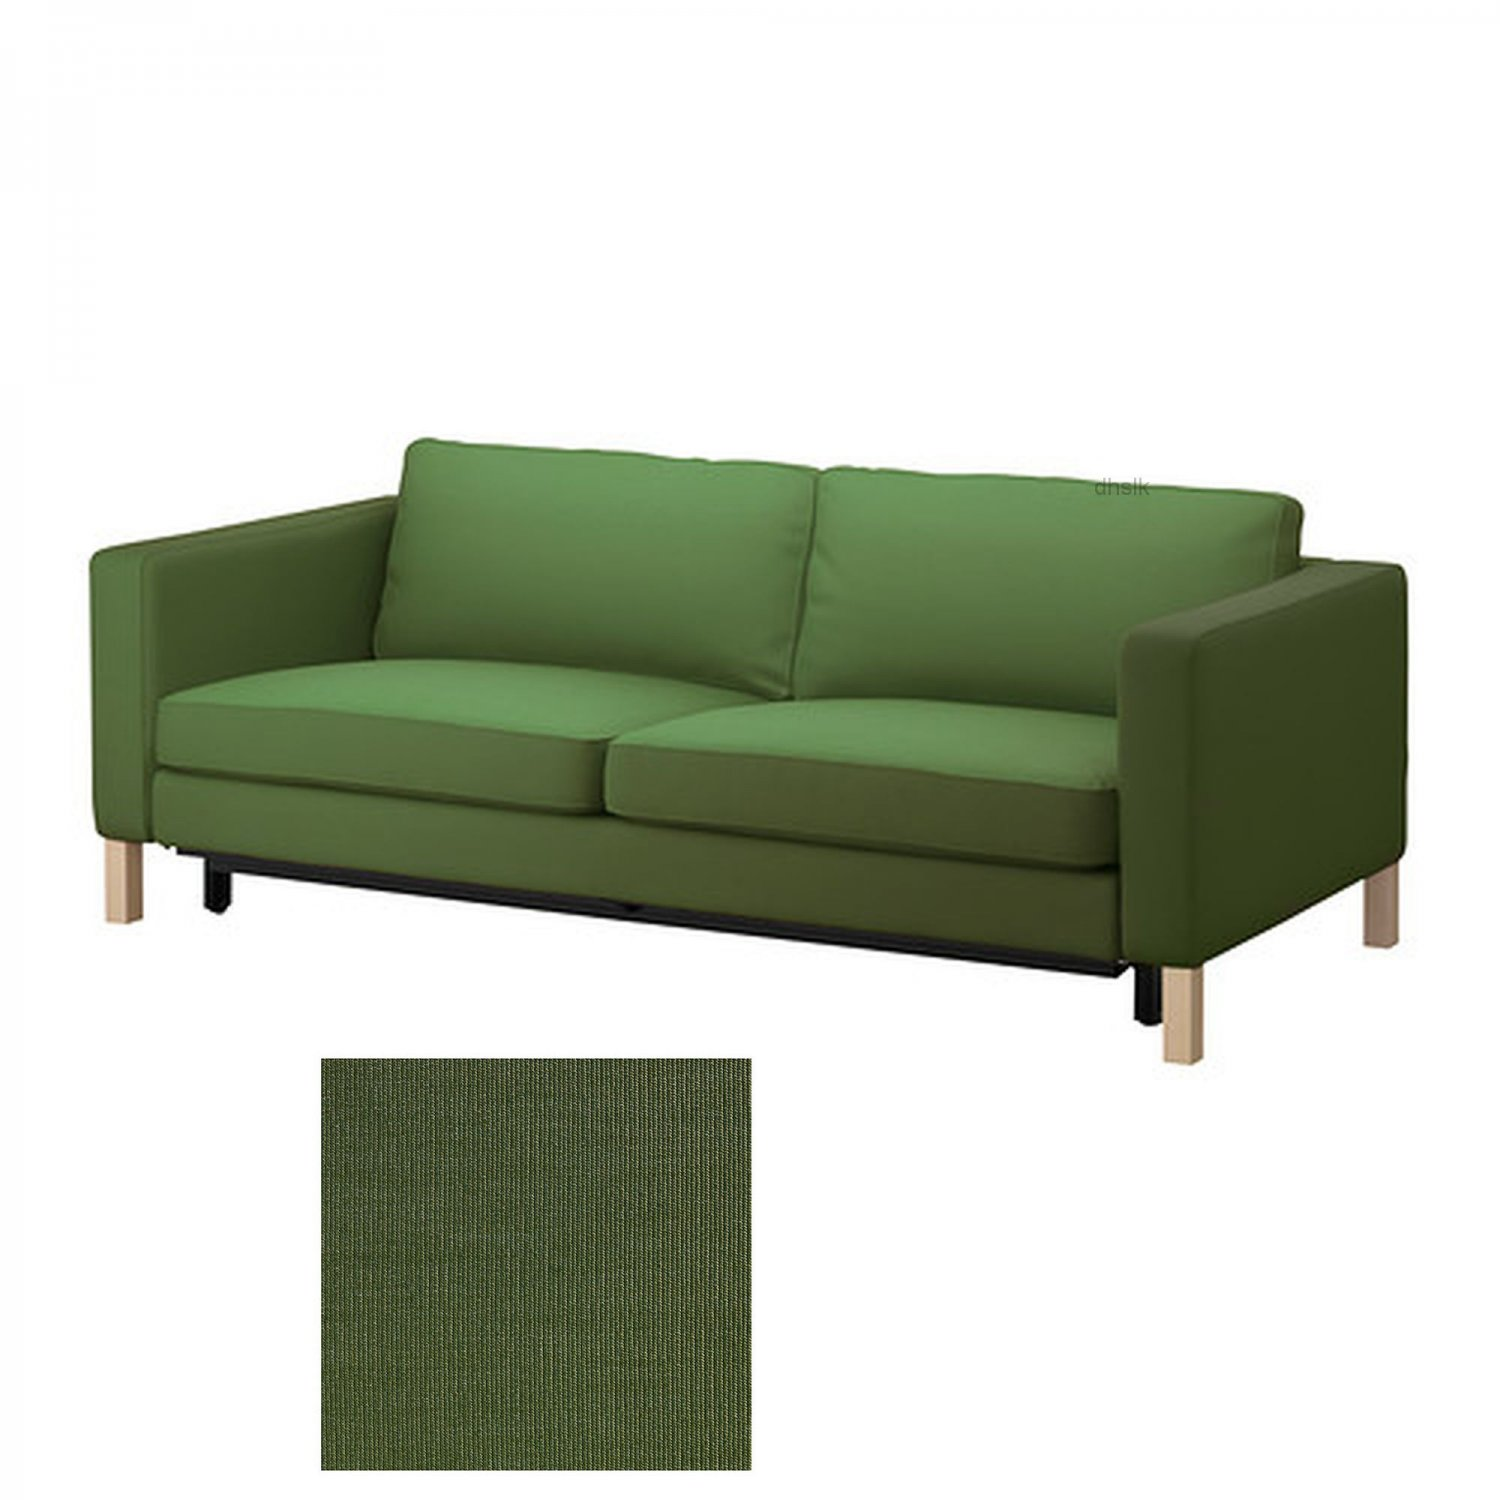 IKEA Karlstad Sofa Bed SLIPCOVER Sofabed Cover SIVIK DARK  : 543cb65737bad54622b from rock-paper-scissors.ecrater.com.au size 1500 x 1500 jpeg 142kB